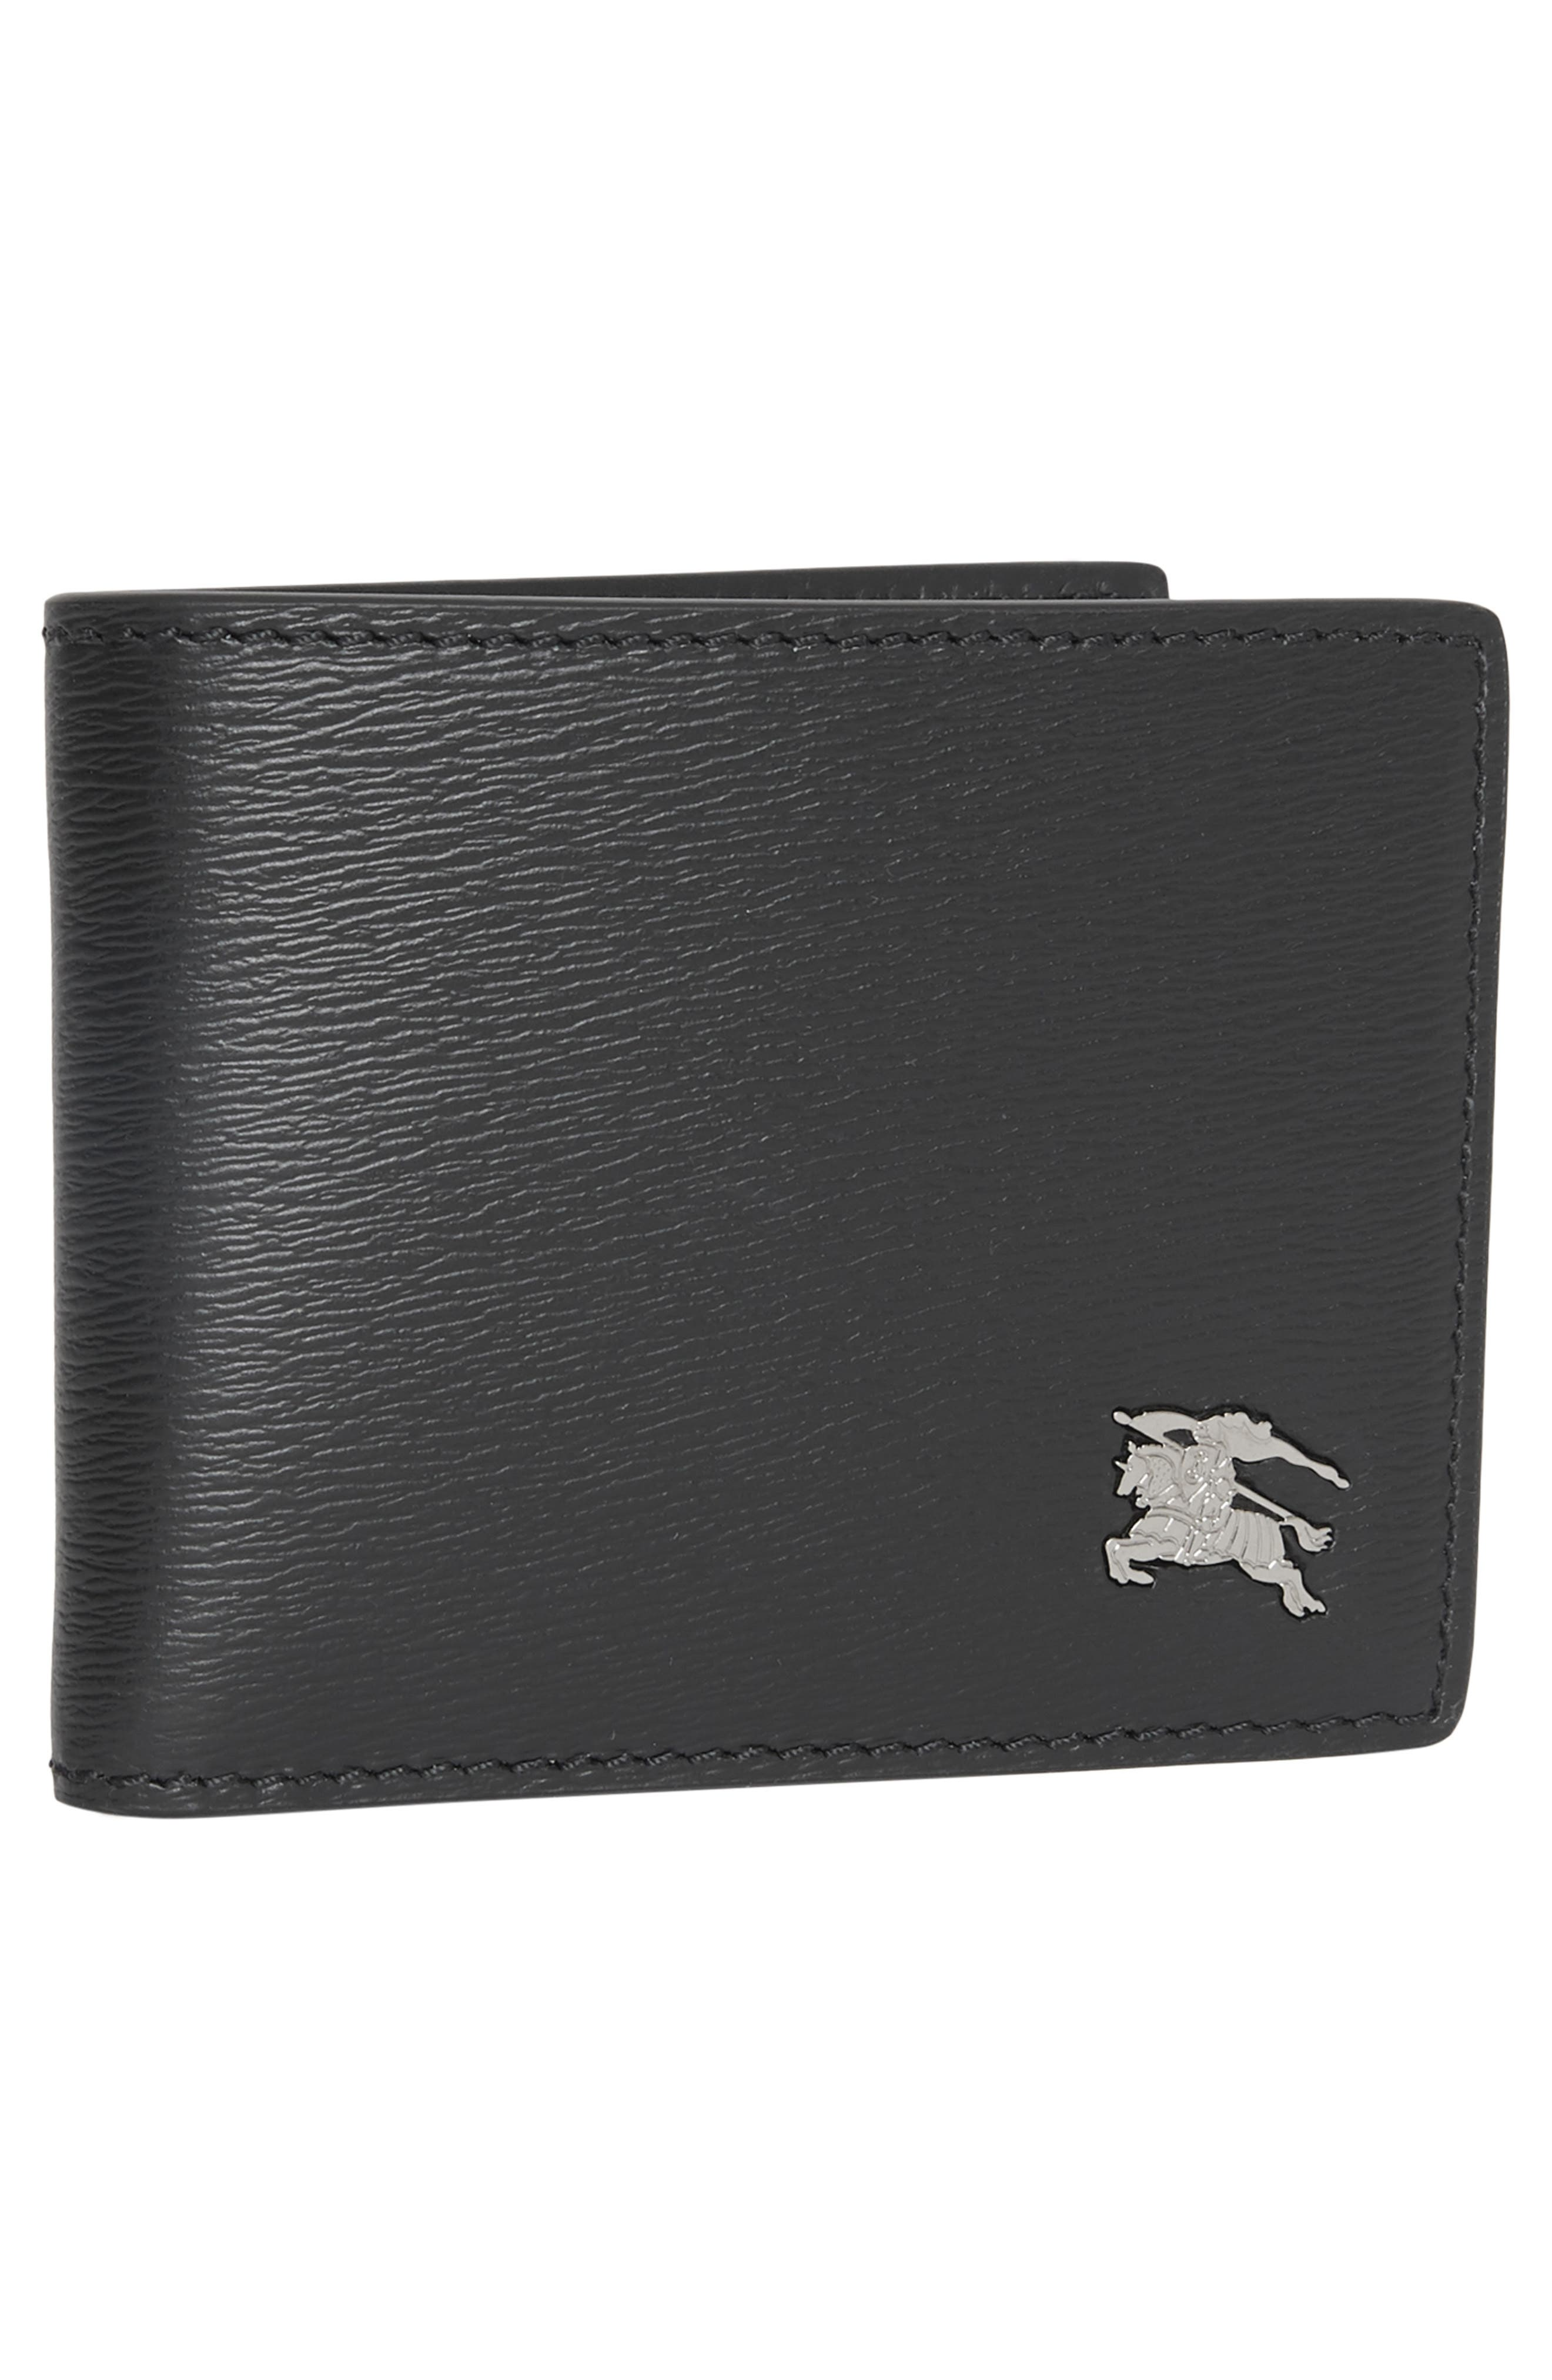 BURBERRY, Leather Bifold Wallet, Alternate thumbnail 5, color, 001